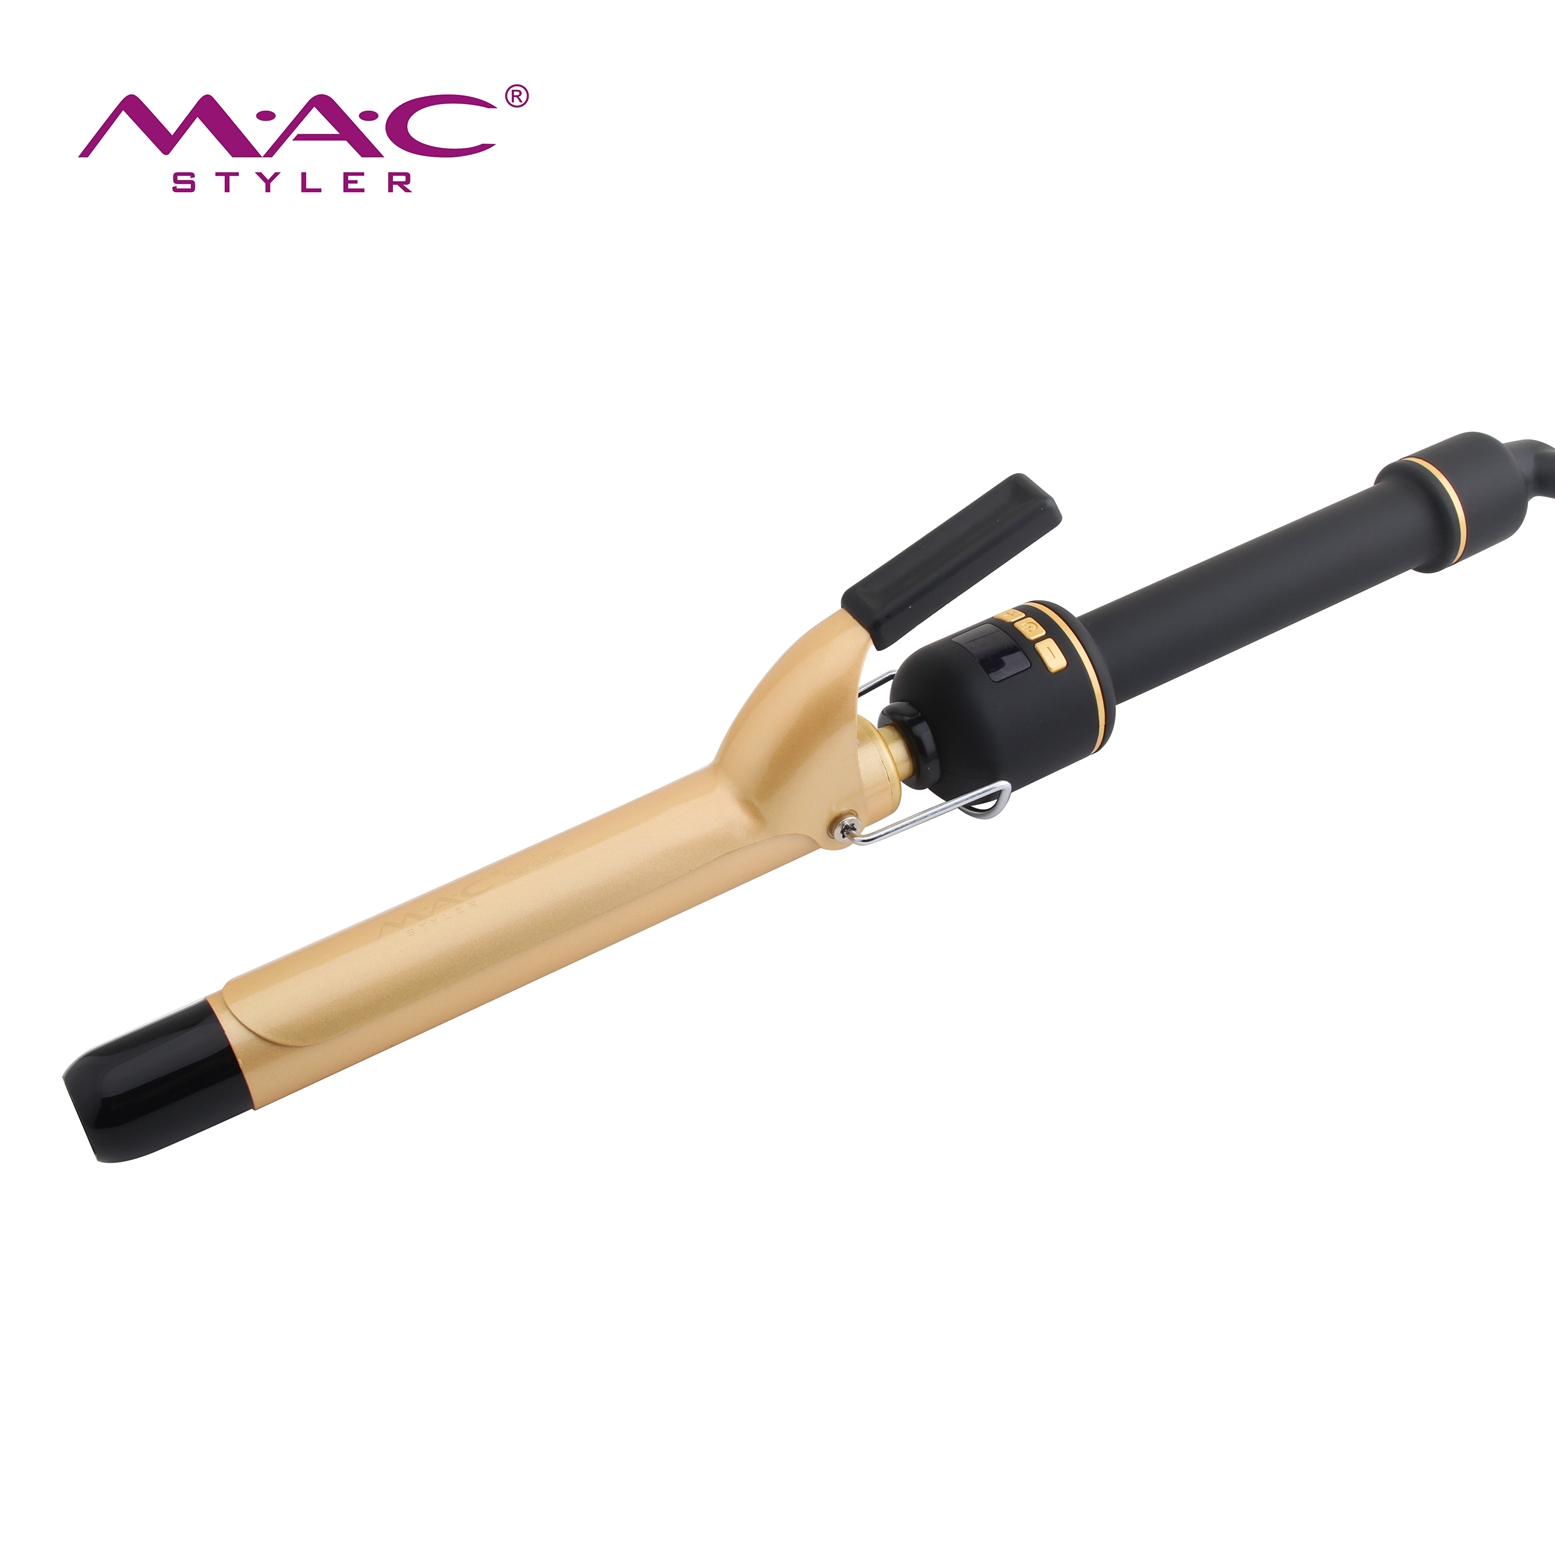 Anti-scalding Customized PTC Heater Professional Fashion Salon Curls Magic Roller Wand Fast Heating Hair Curler